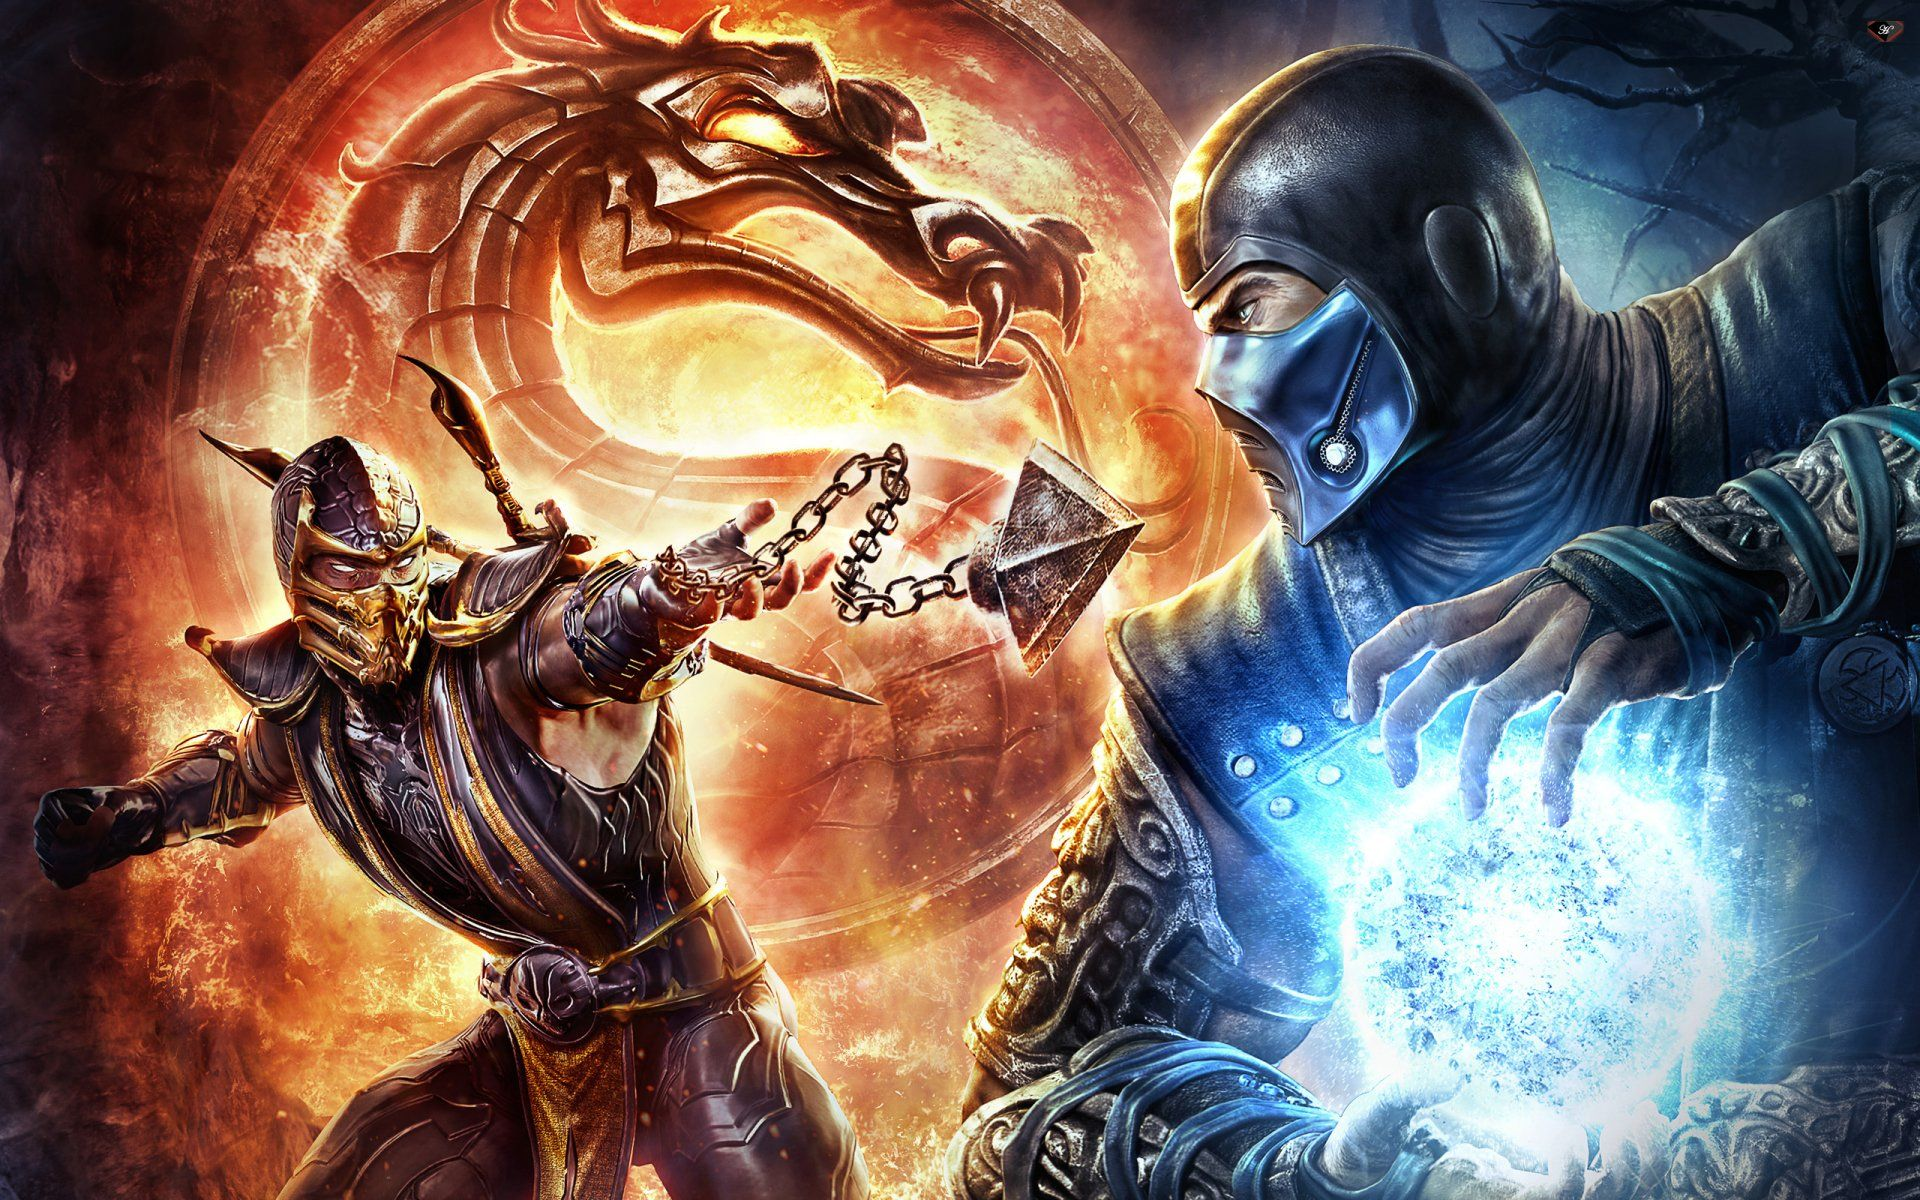 1920x1200 208 Mortal Kombat HD Wallpapers | Background Images - Wallpaper Abyss